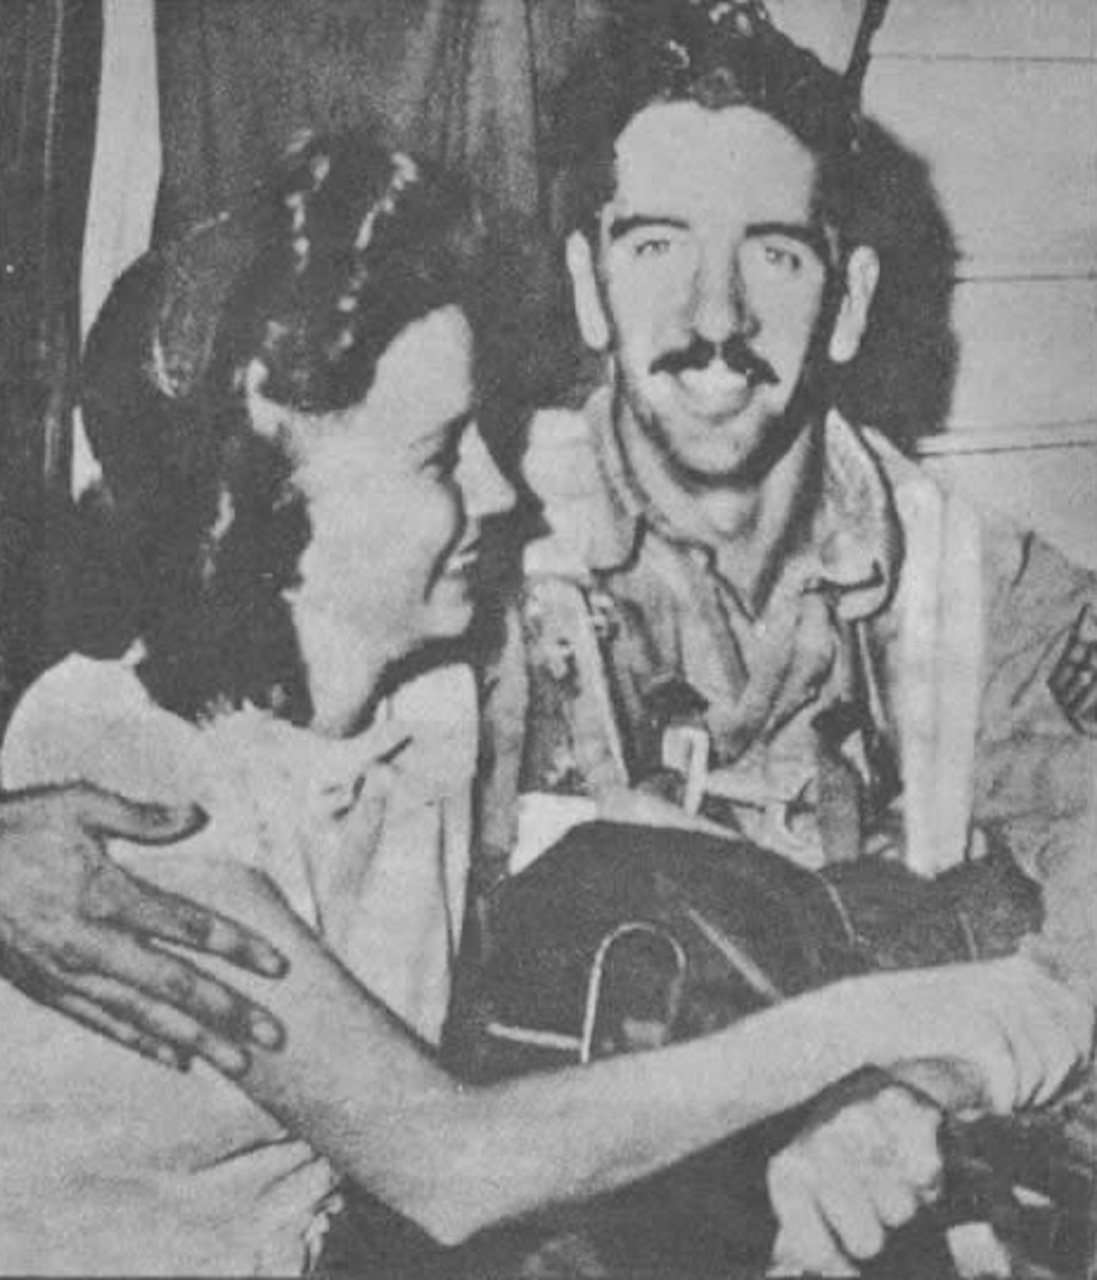 A man sits with his arm around a smiling woman.